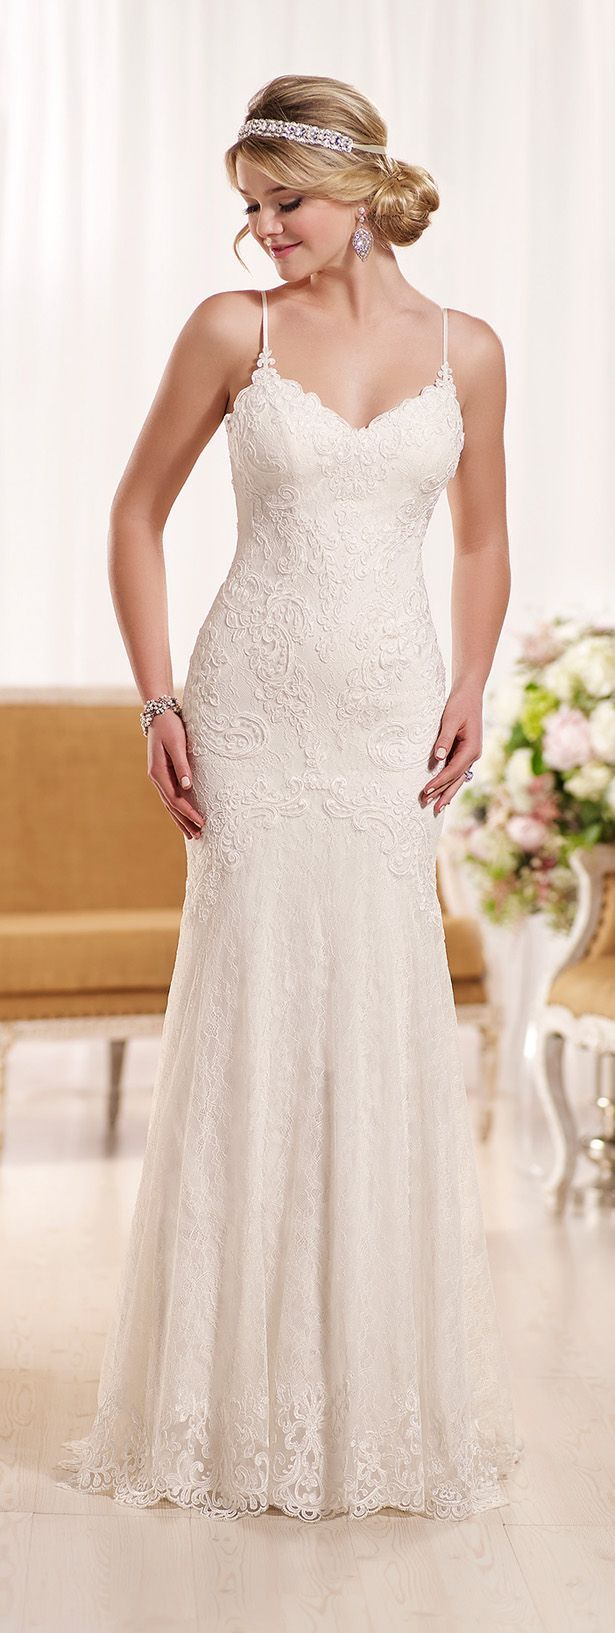 17 Best images about Civil Court Wedding dress on ...